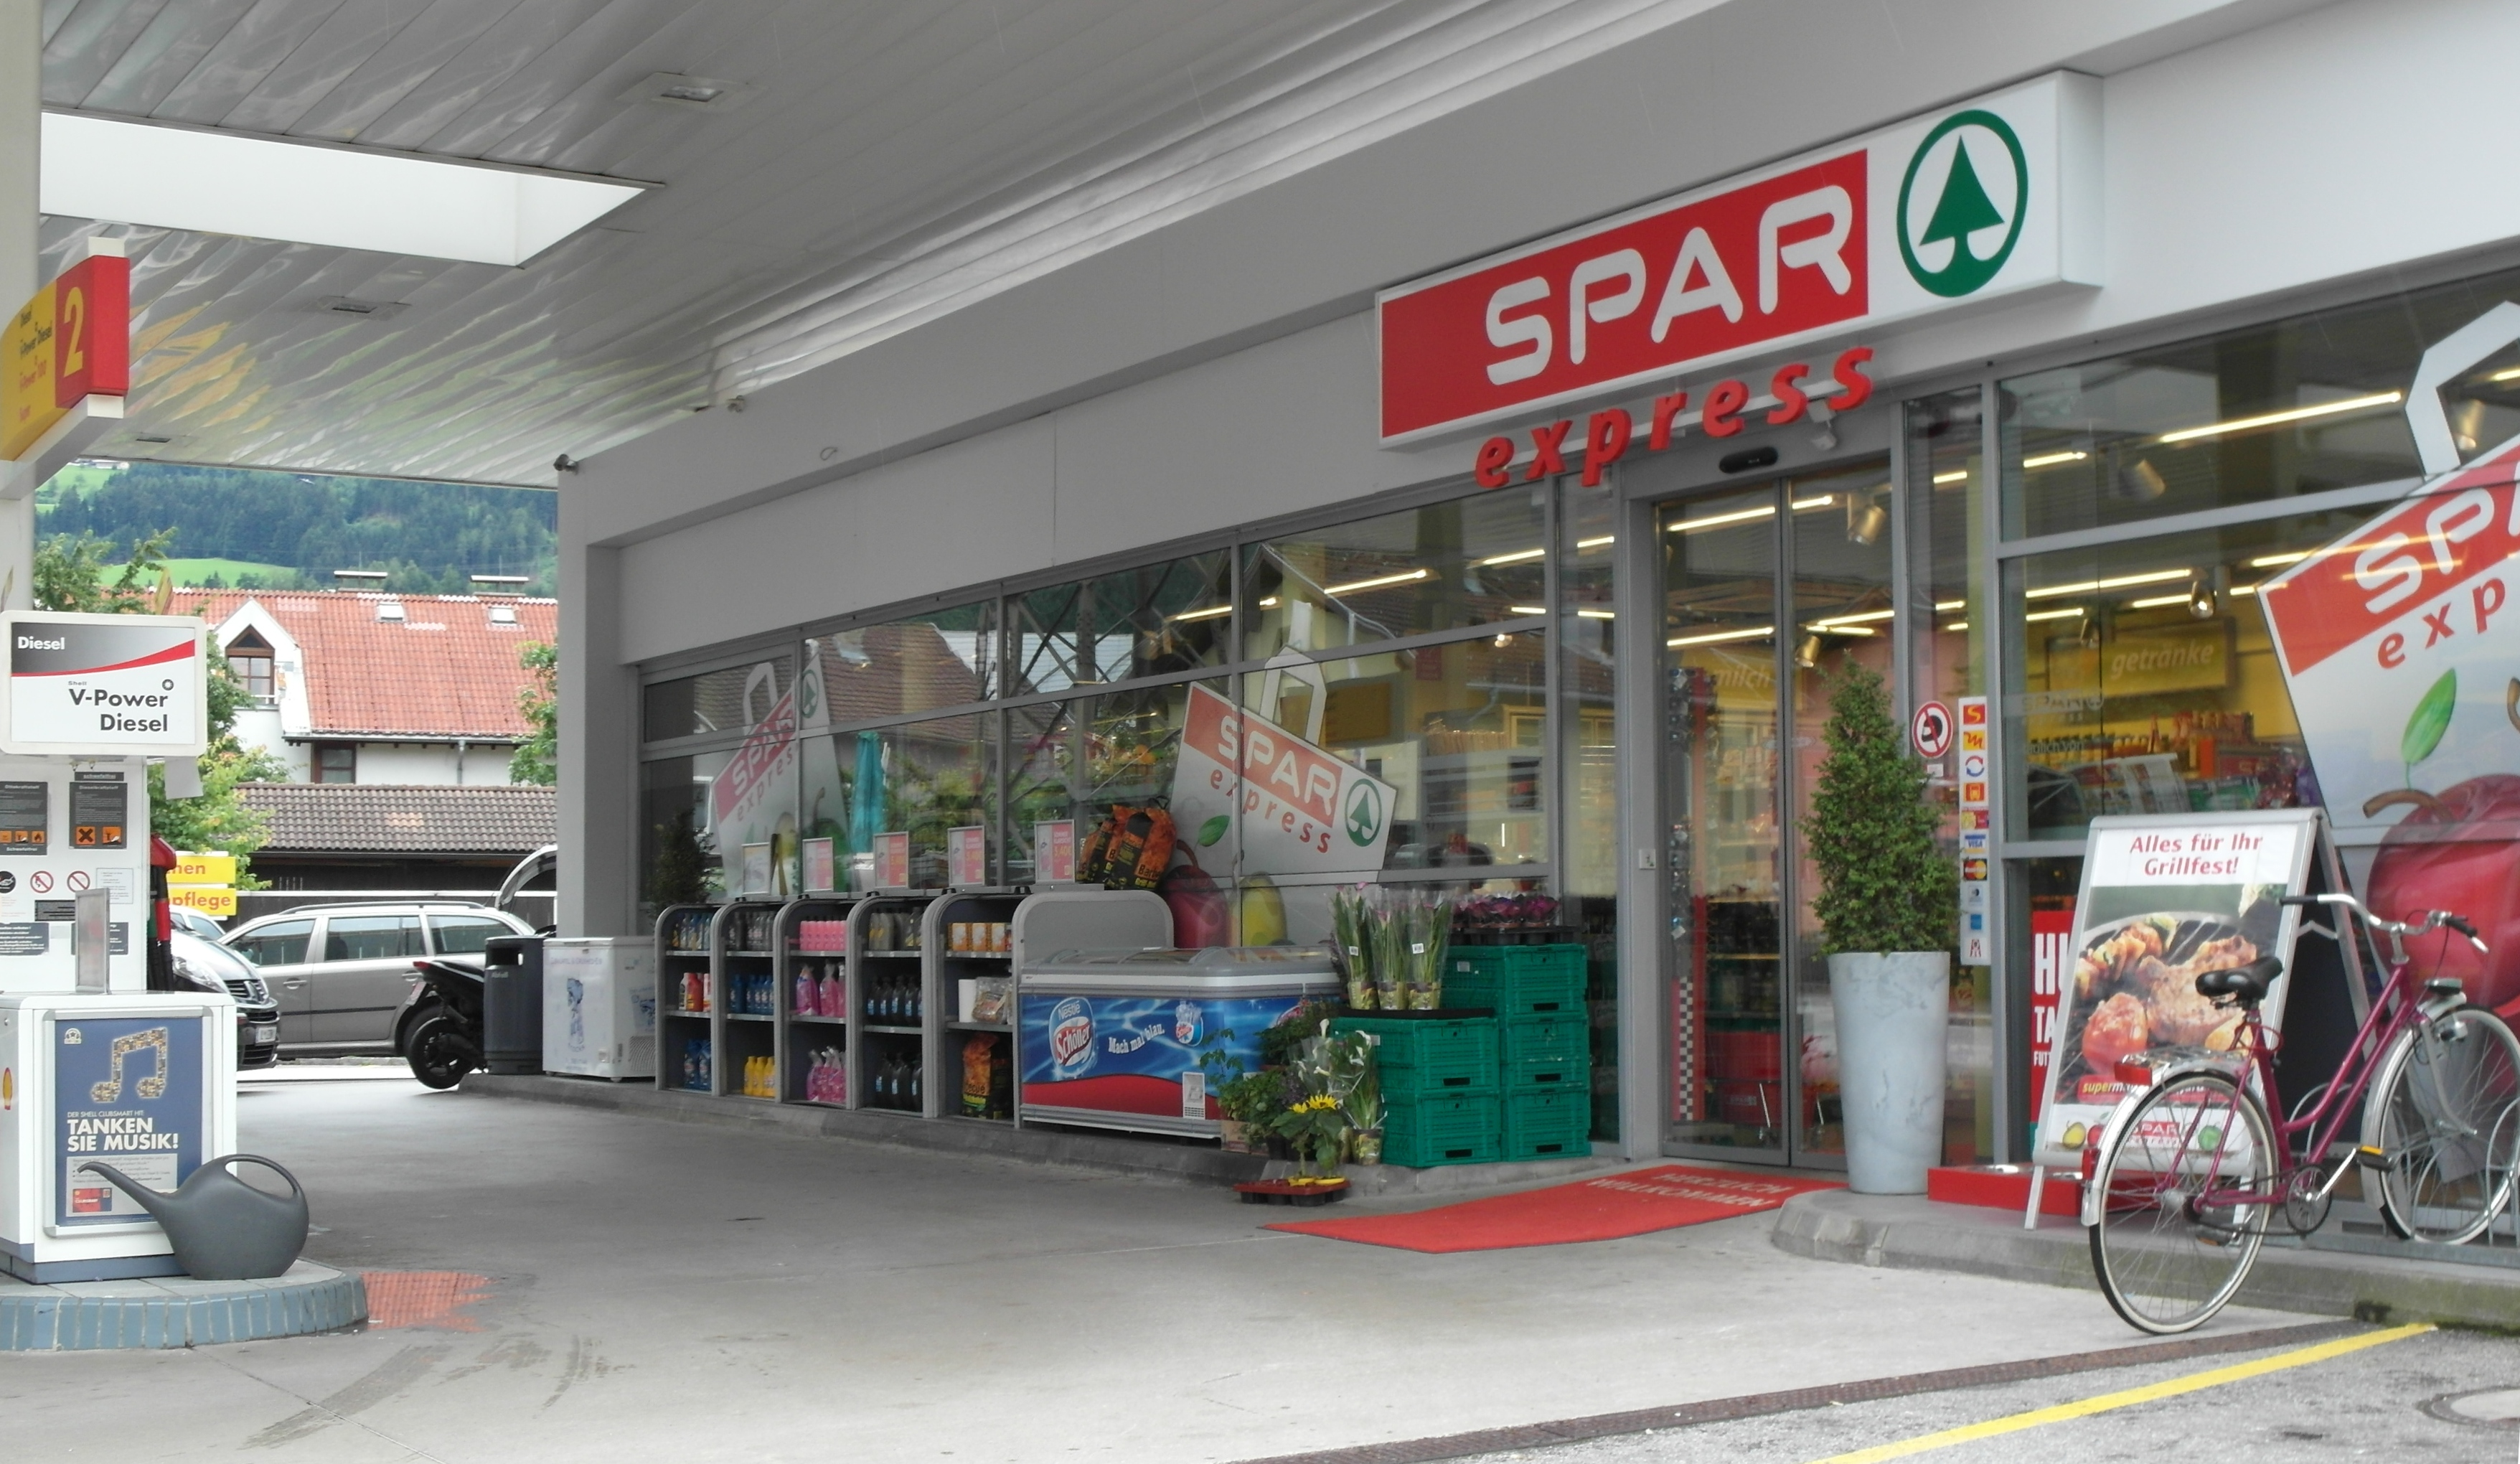 ICYMI: South African Retail Spar Closes Its Distribution Centers In Zimbabwe